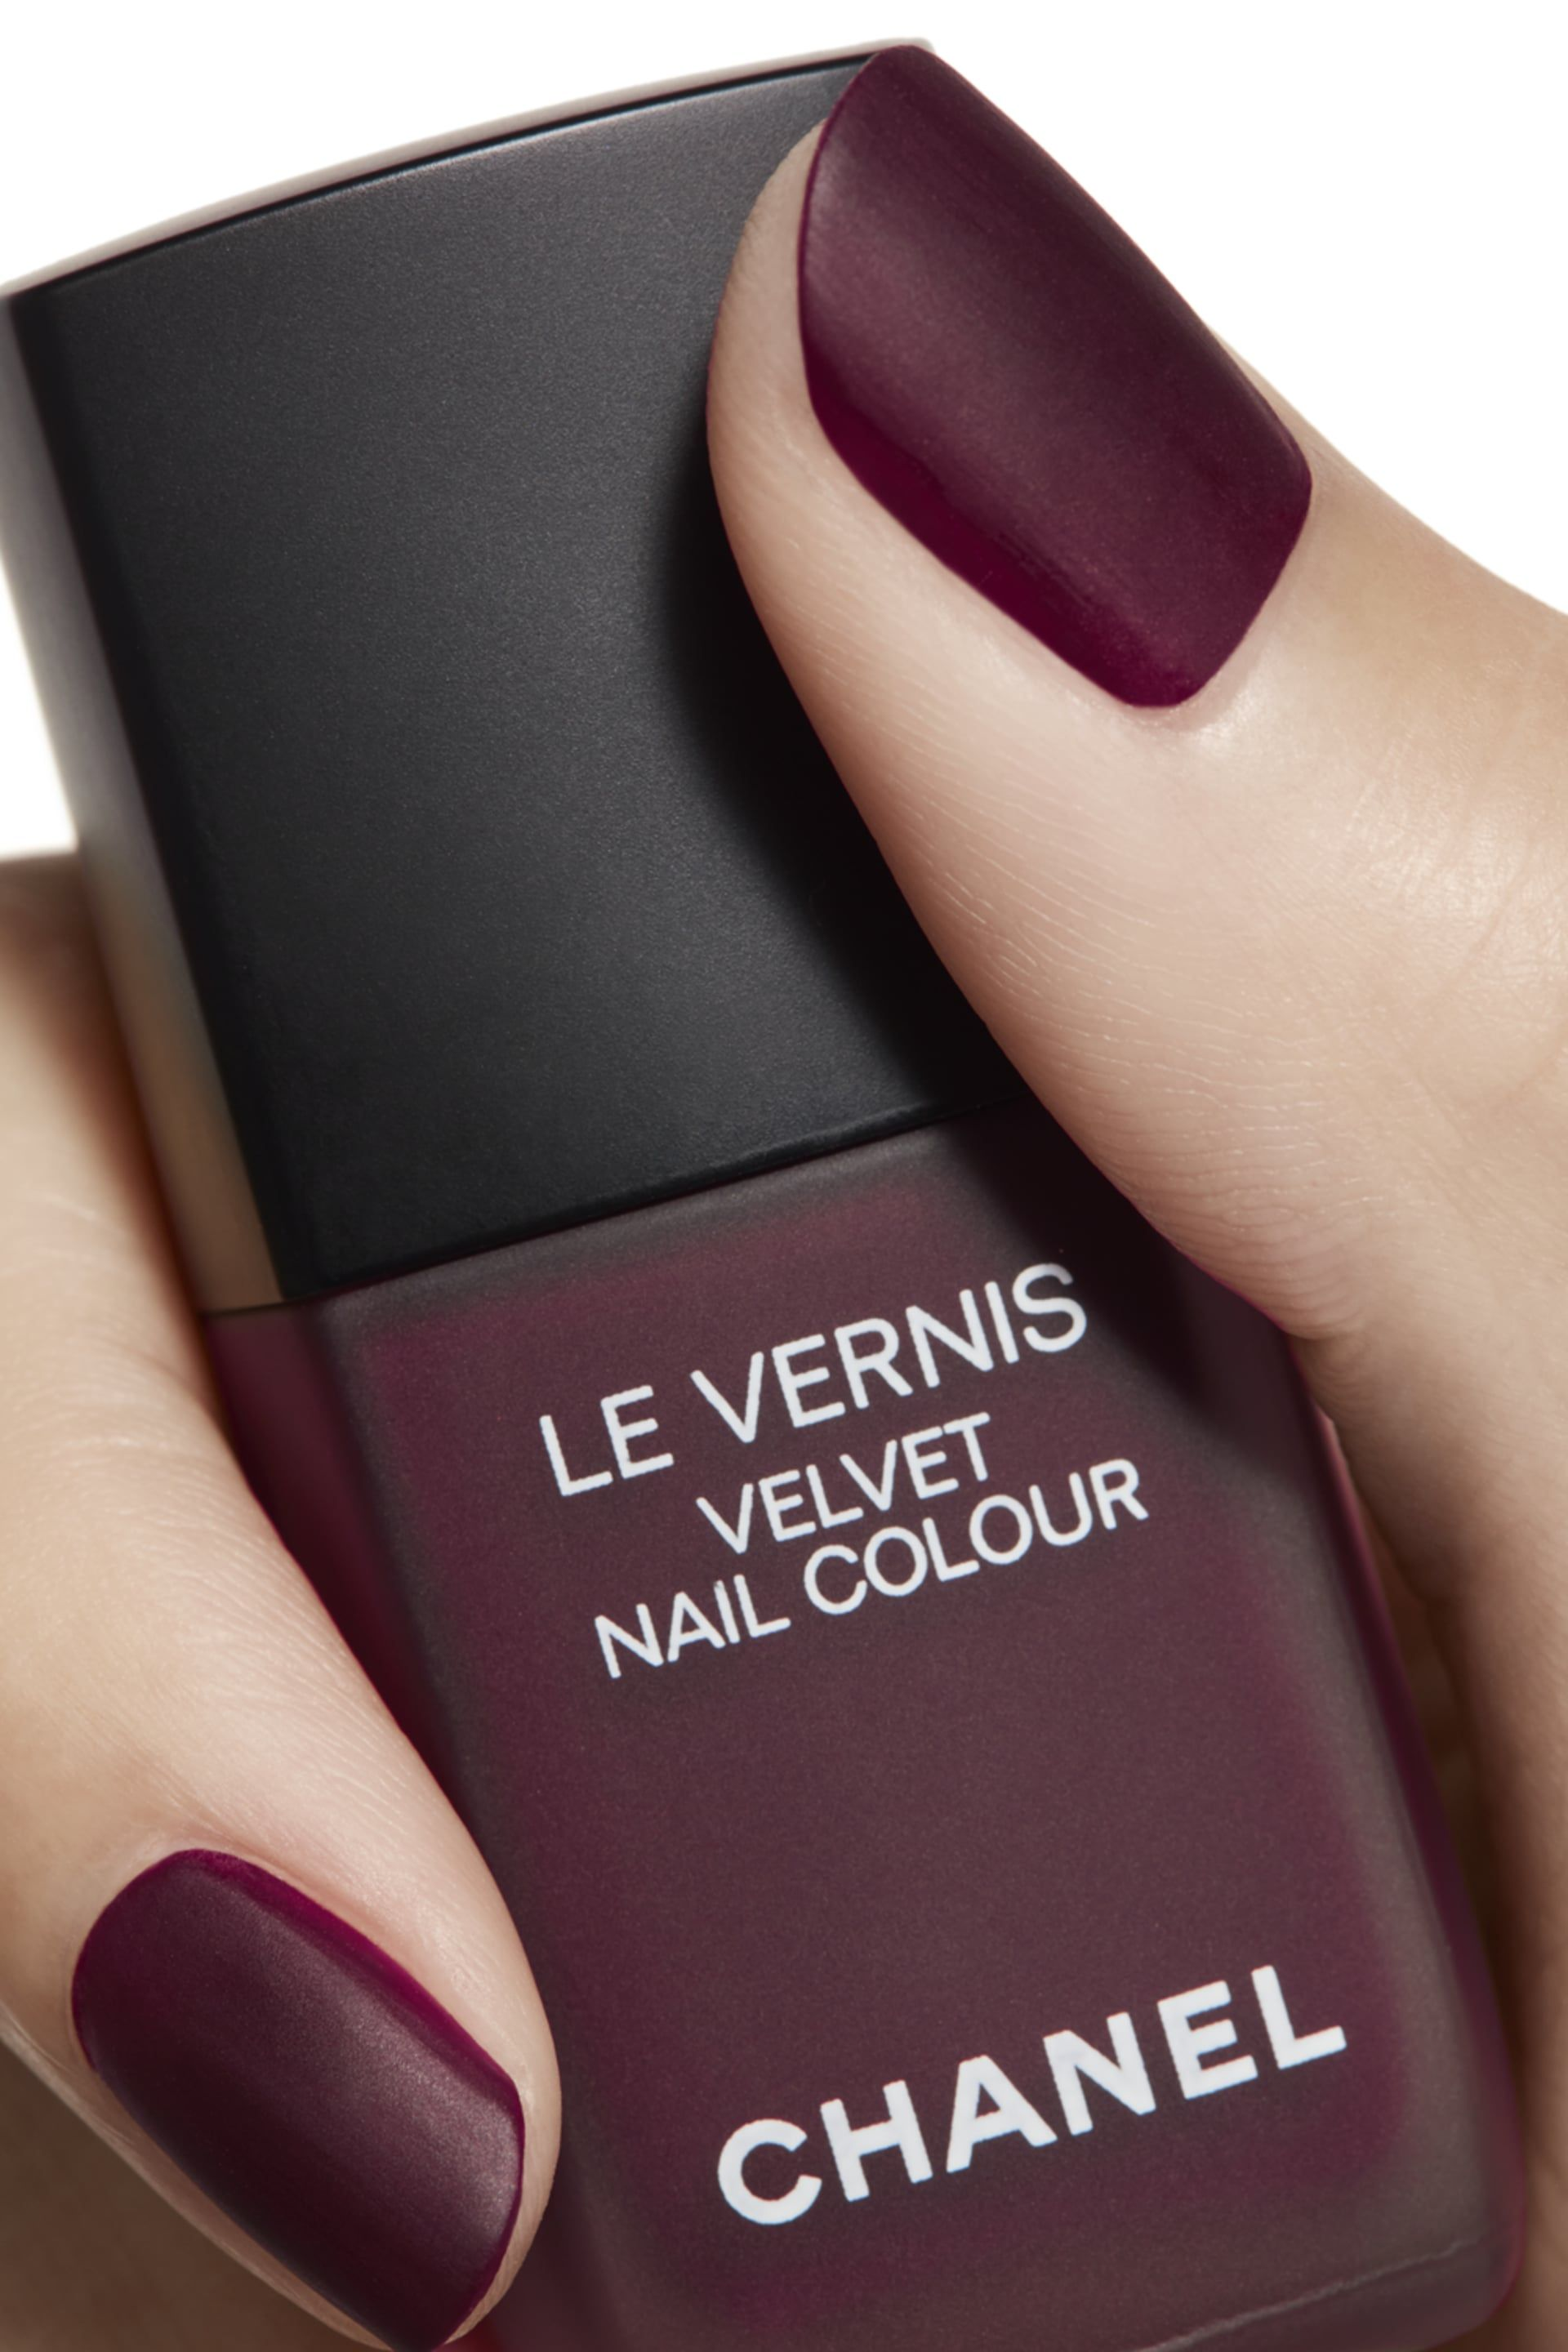 LE VERNIS Velvet Nail Colour 638 - PROFONDEUR in 2019 | beauty and ...